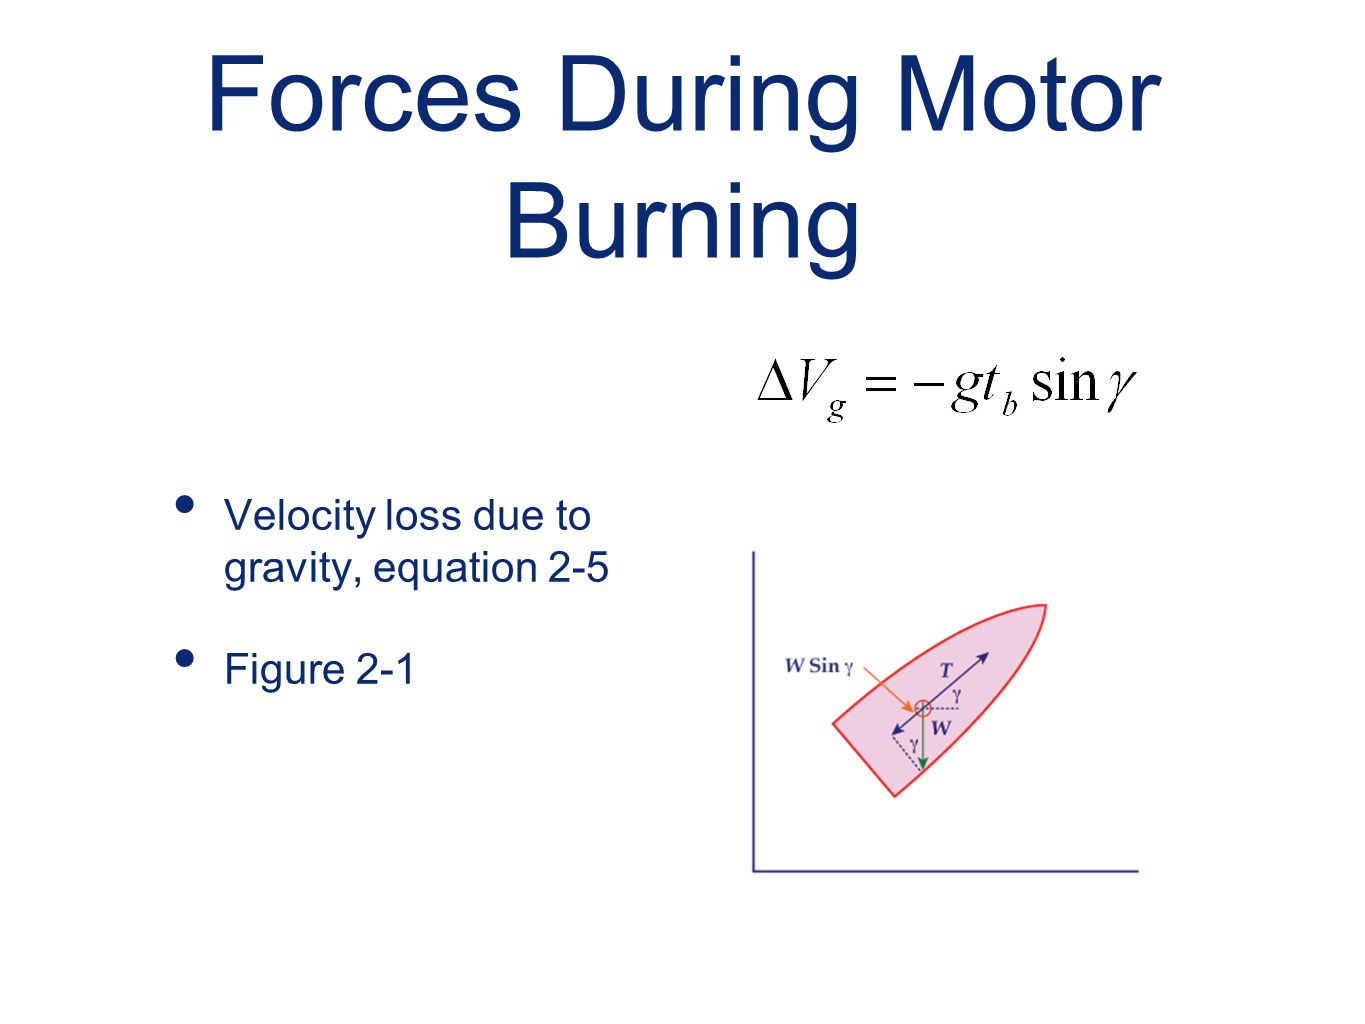 Forces During Motor Burning Velocity loss due to gravity, equation 2-5 Figure 2-1